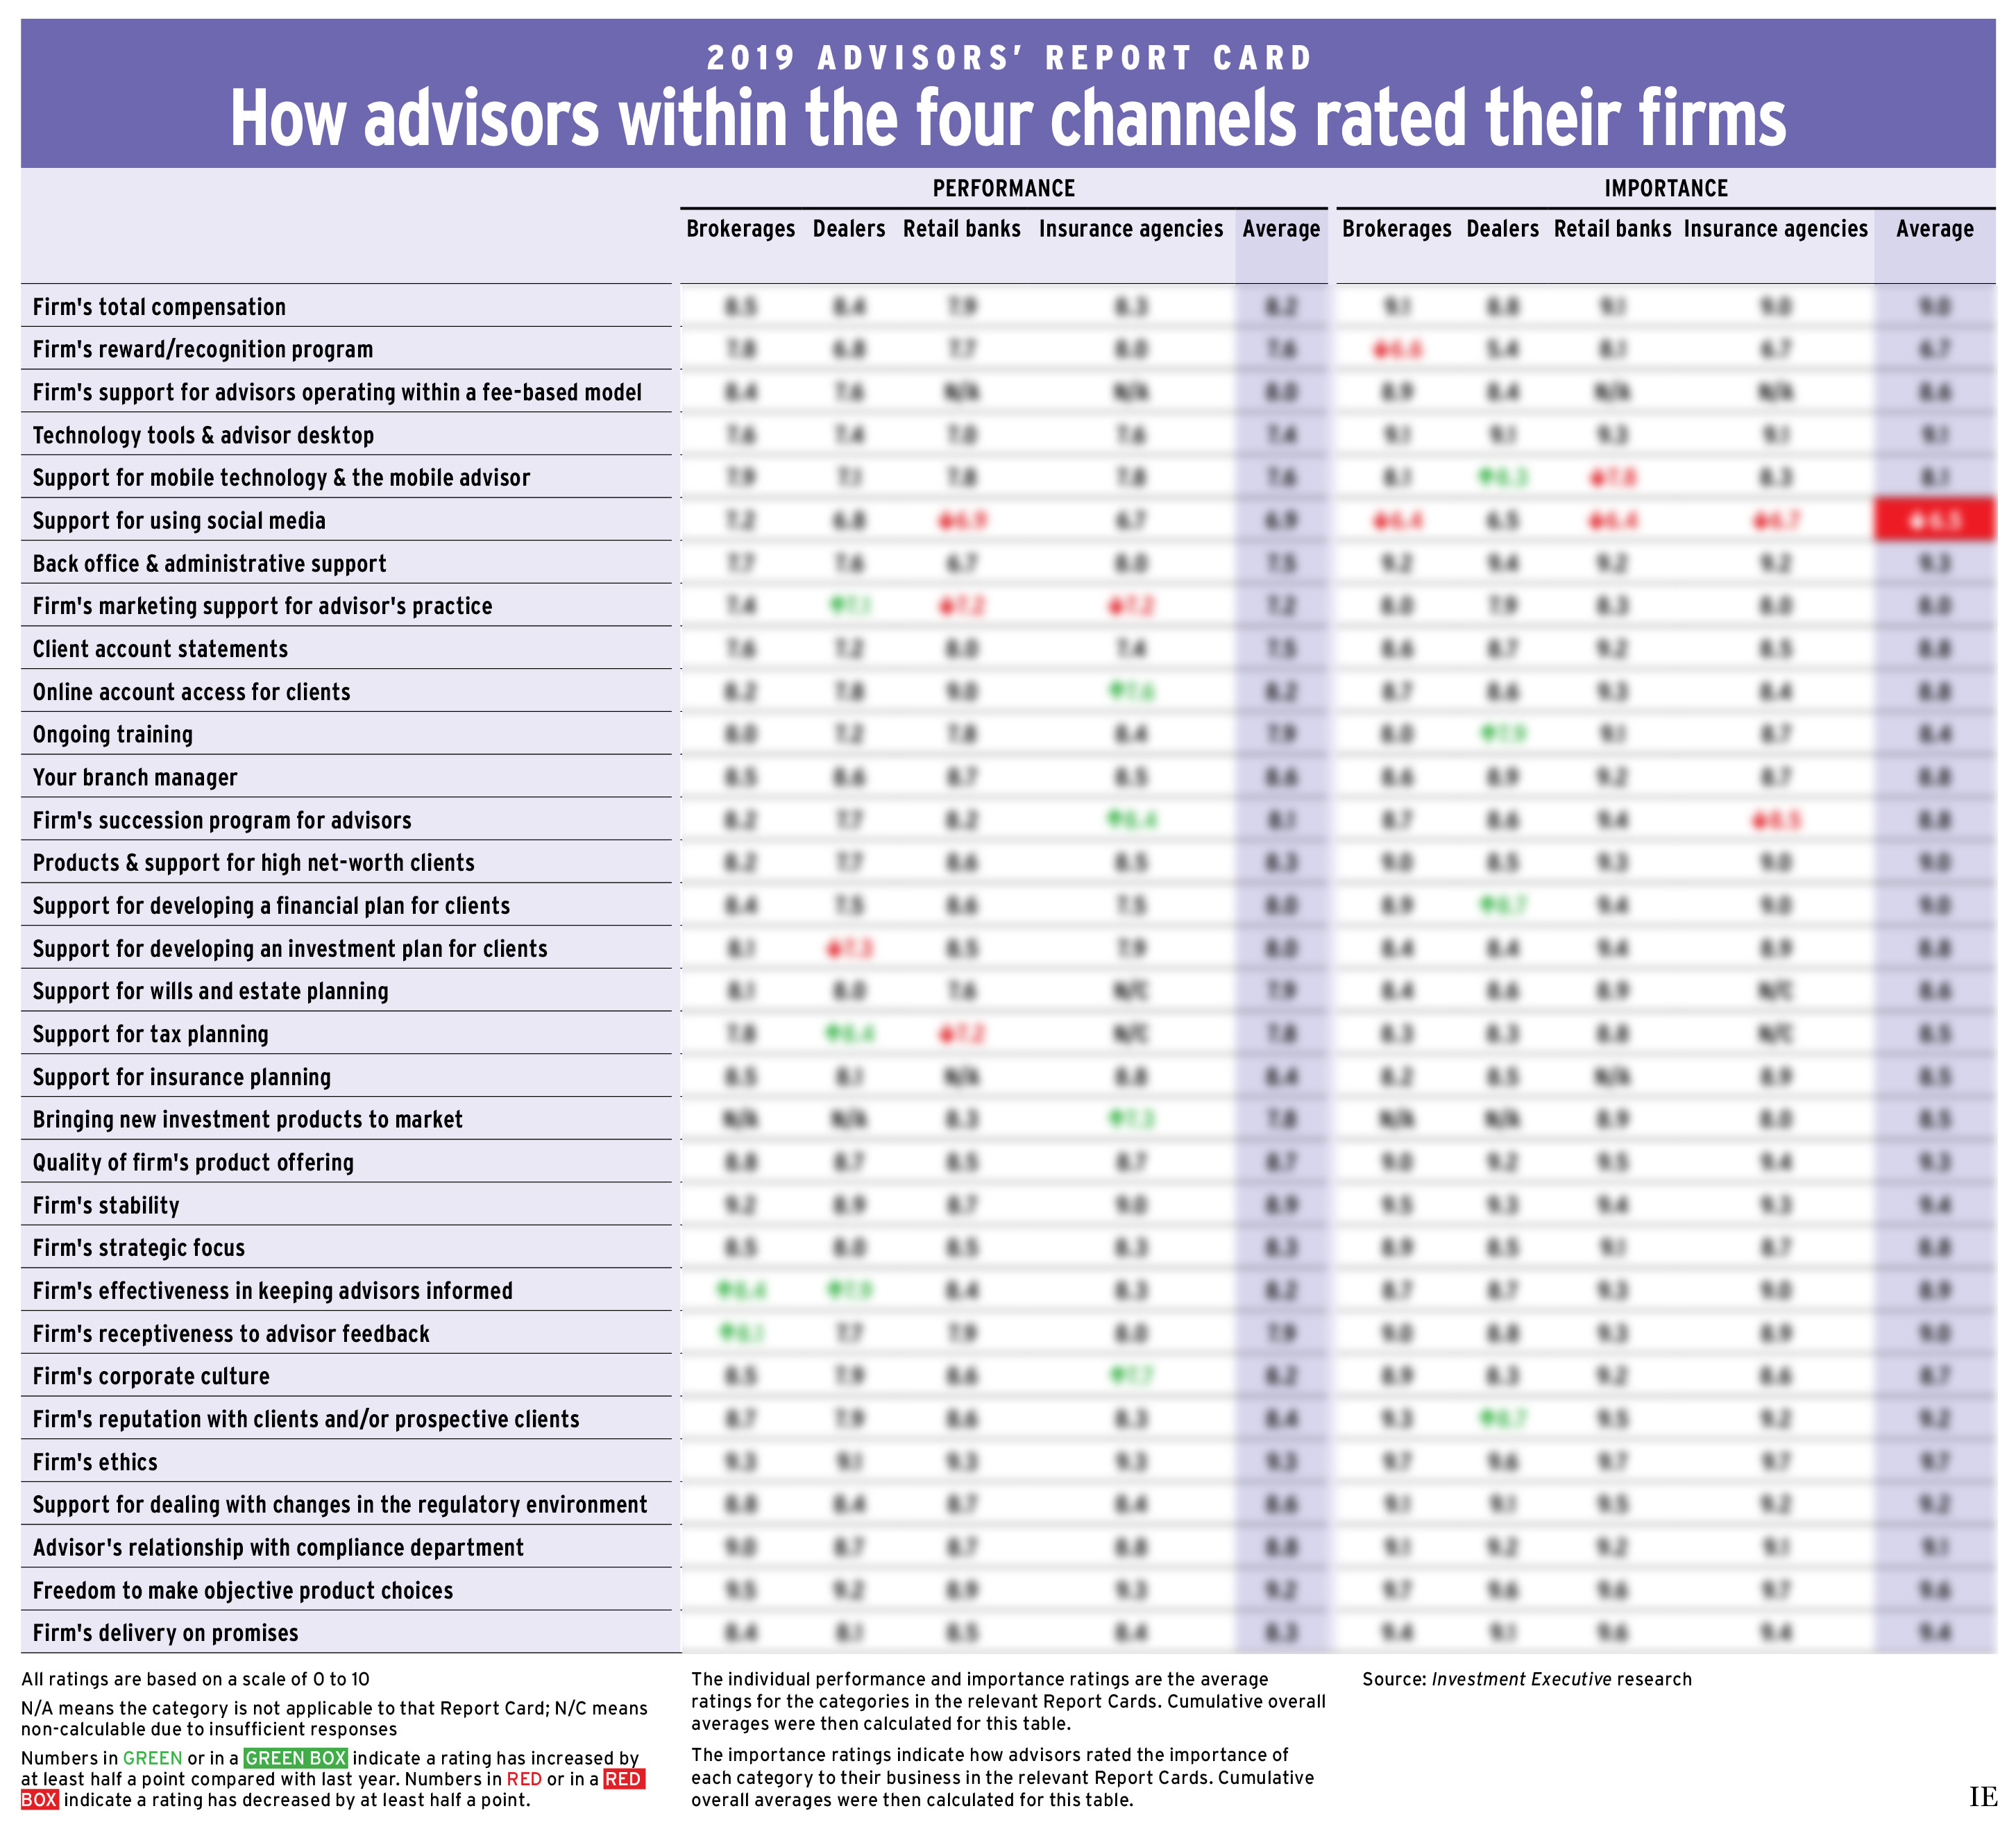 Advisors' Report Card 2019: How advisors within four channels rated their firms